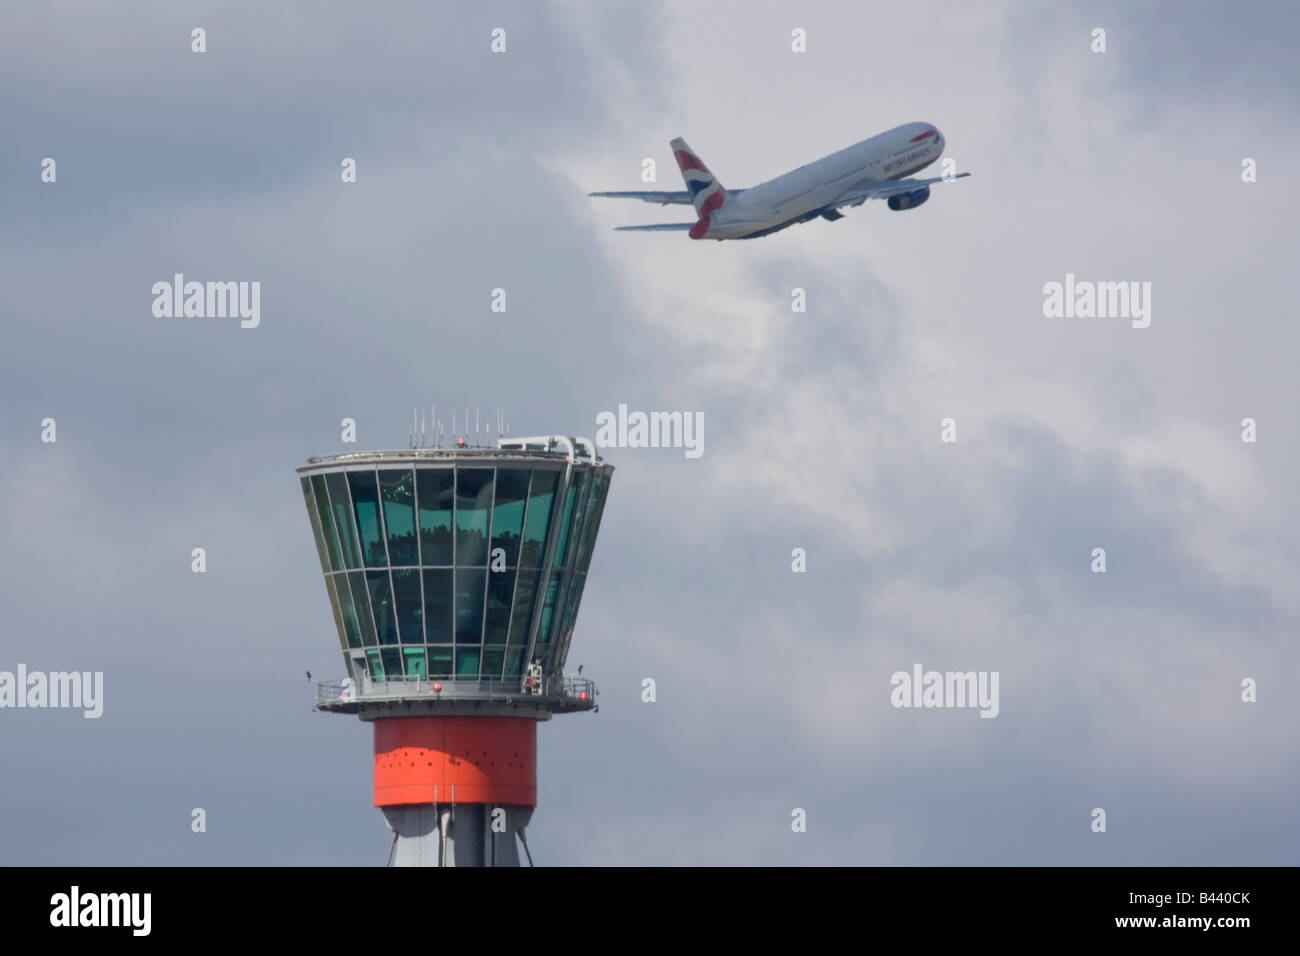 Northwest Airlines Airbus A330 taking off in the background of London Heathrow control tower. - Stock Image